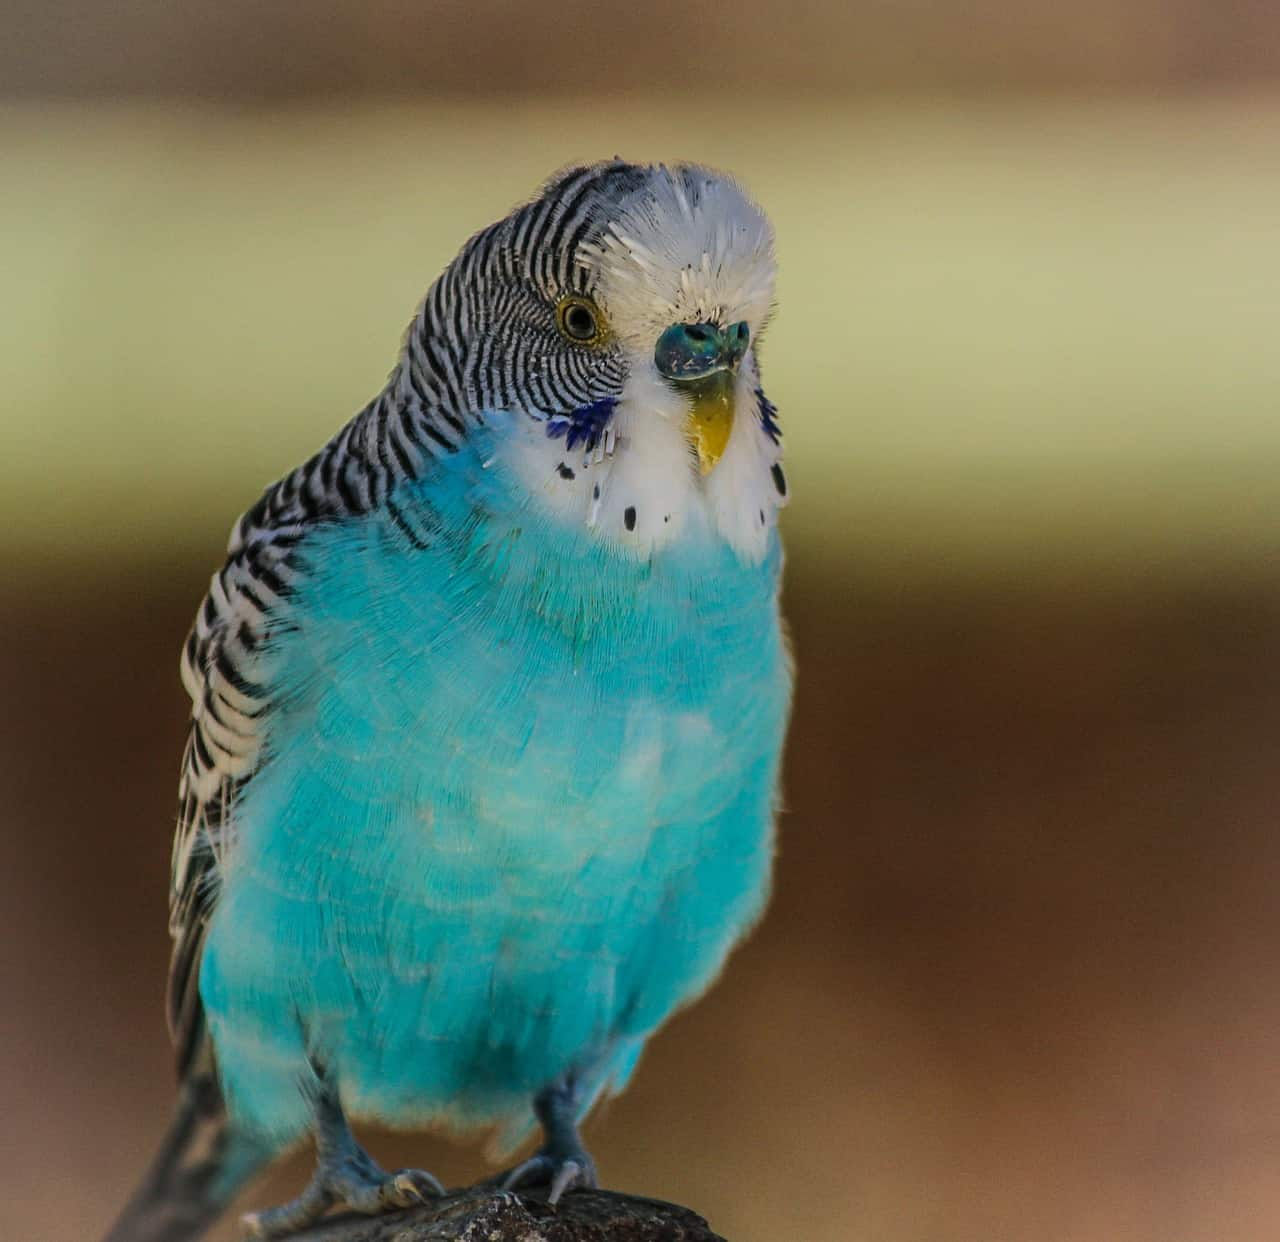 A small blue bird perched on top of a parrot